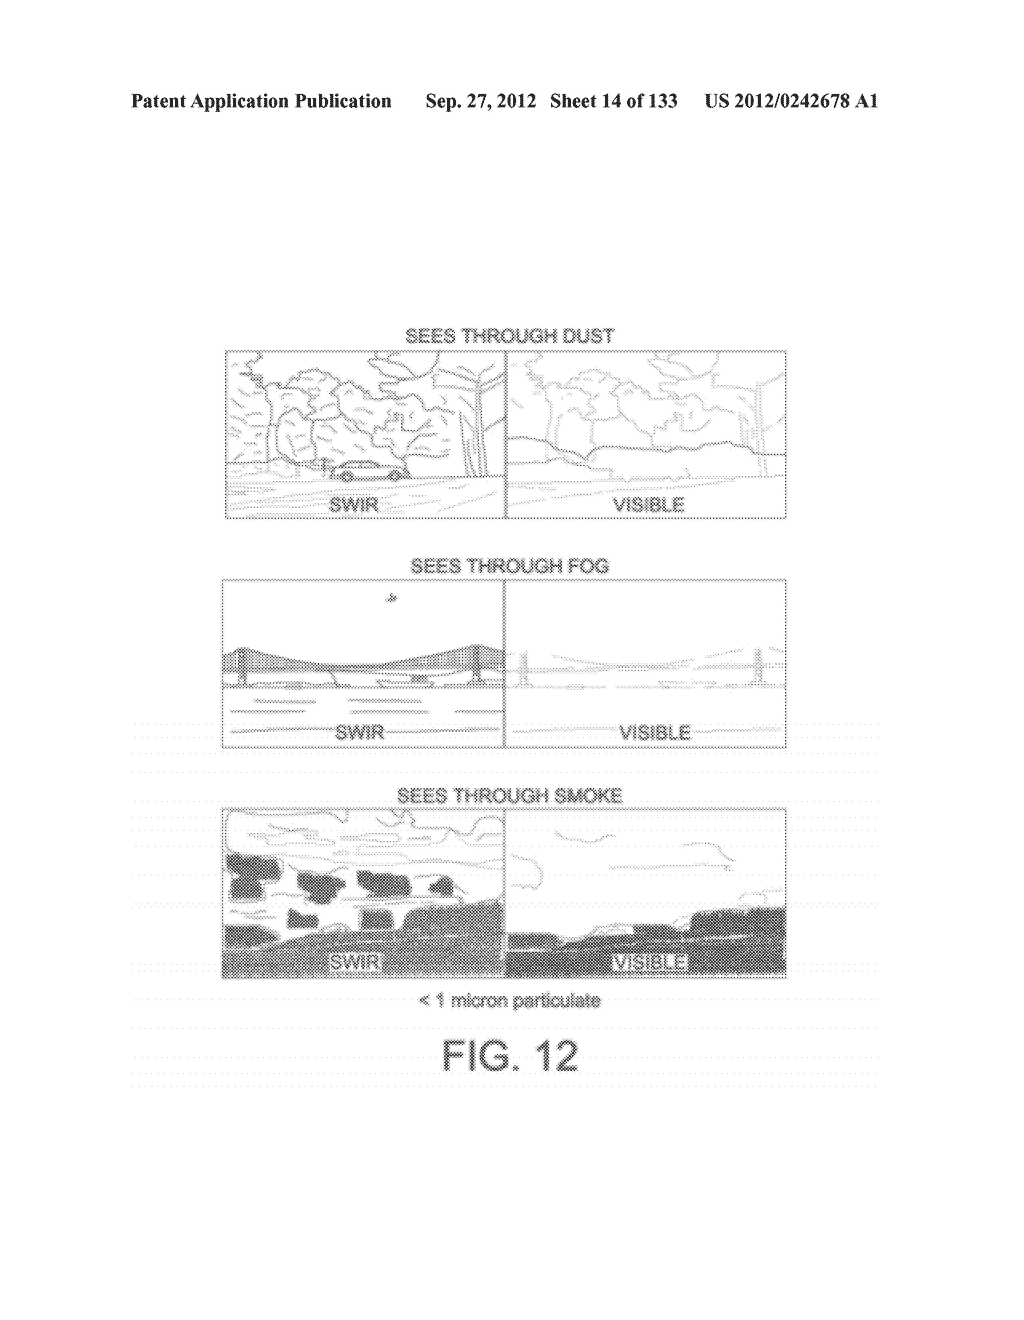 SEE-THROUGH NEAR-EYE DISPLAY GLASSES INCLUDING AN AUTO-BRIGHTNESS CONTROL     FOR THE DISPLAY BRIGHTNESS BASED ON THE BRIGHTNESS IN THE ENVIRONMENT - diagram, schematic, and image 15